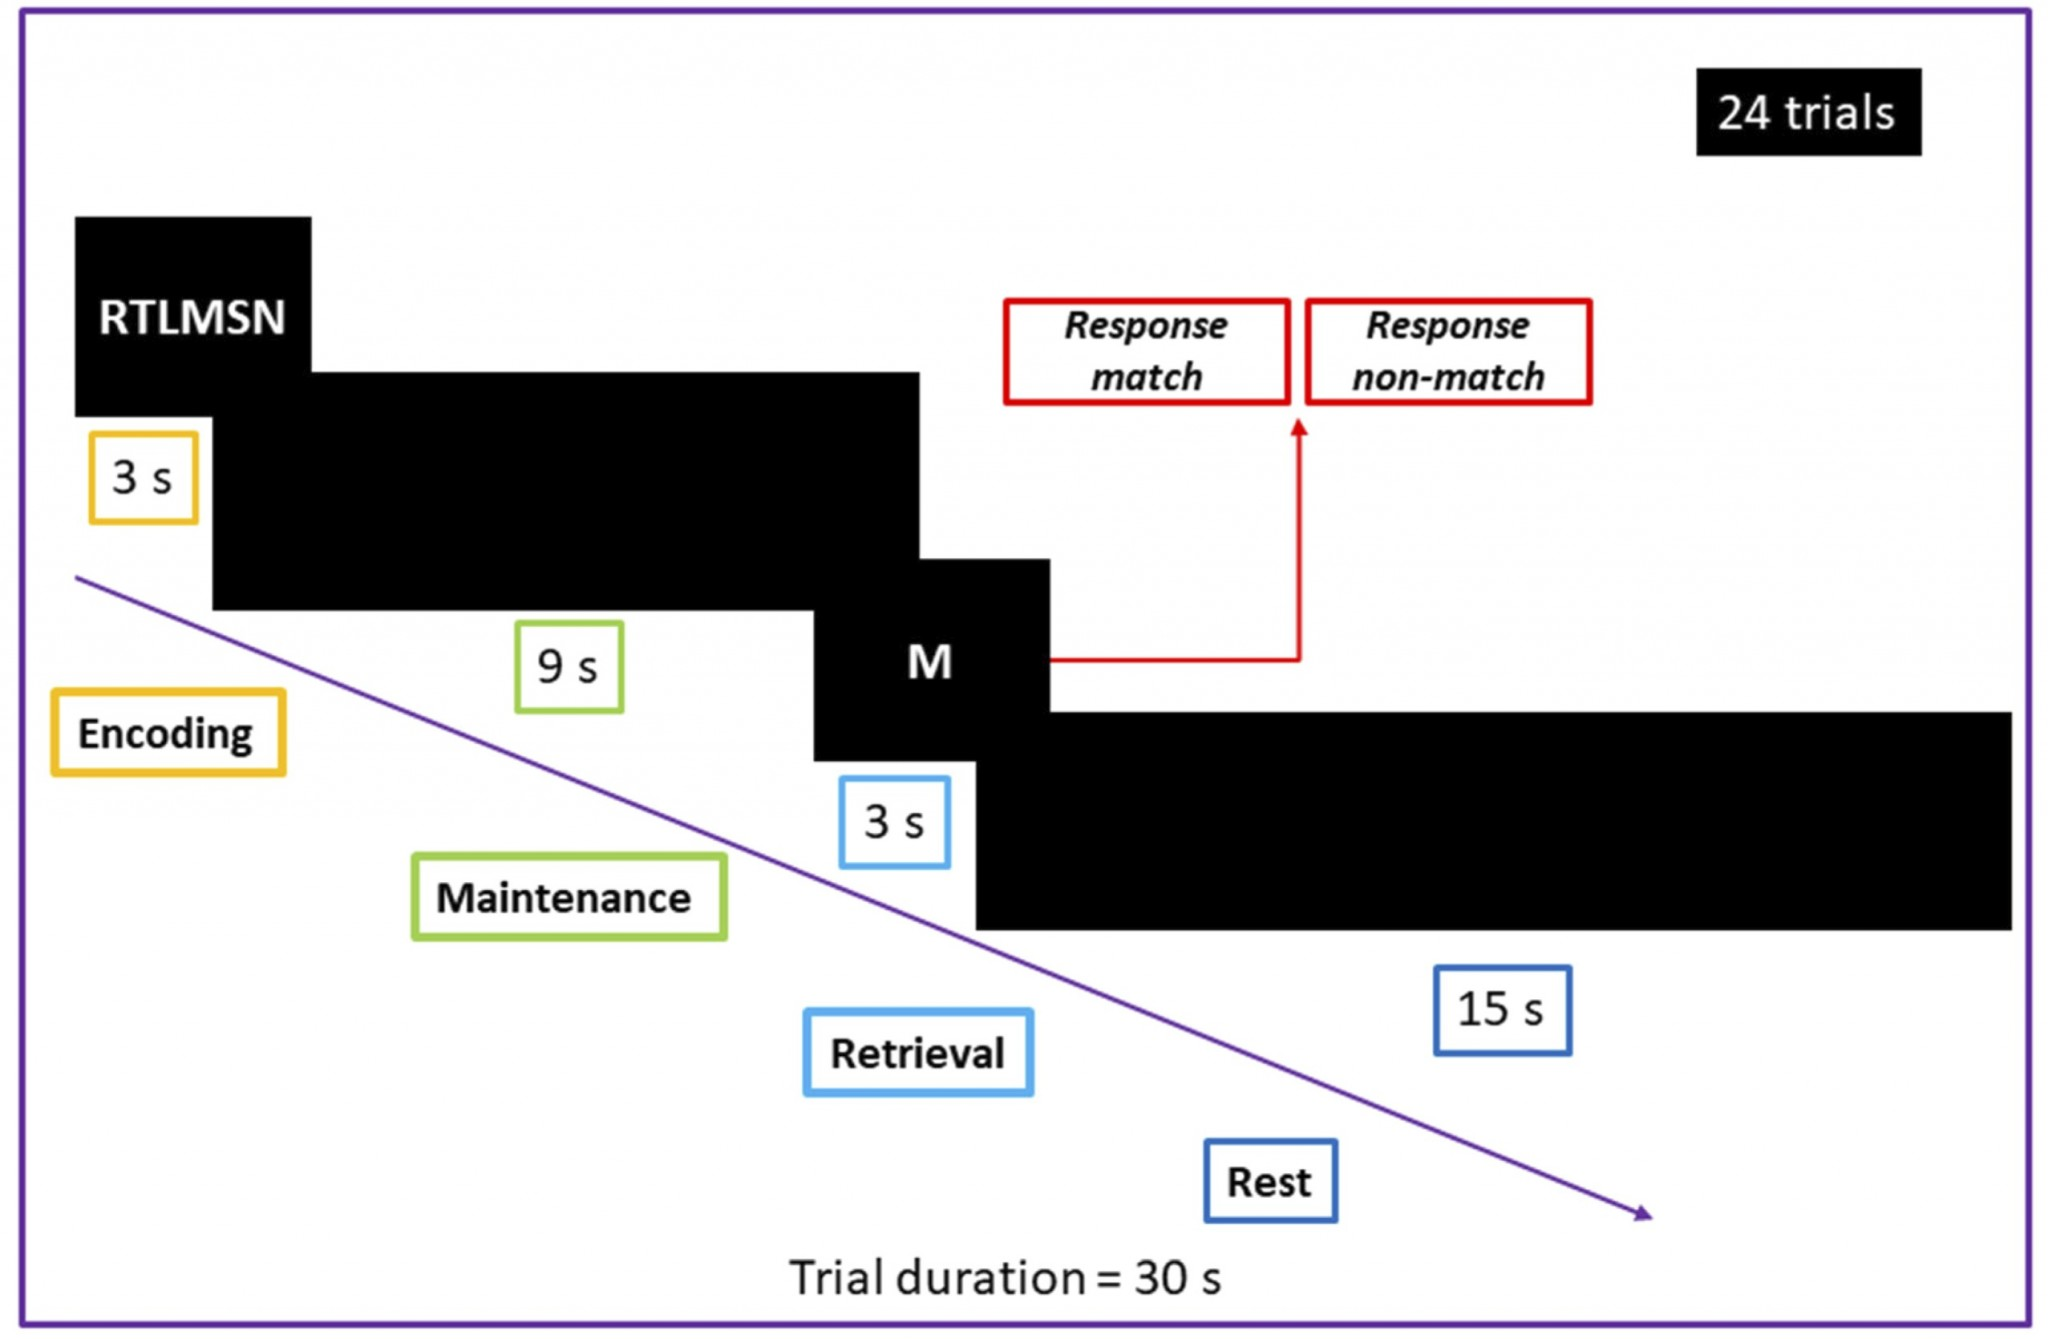 fMRI paradigm with the modified Sternberg task used for individualized determination of simulation target